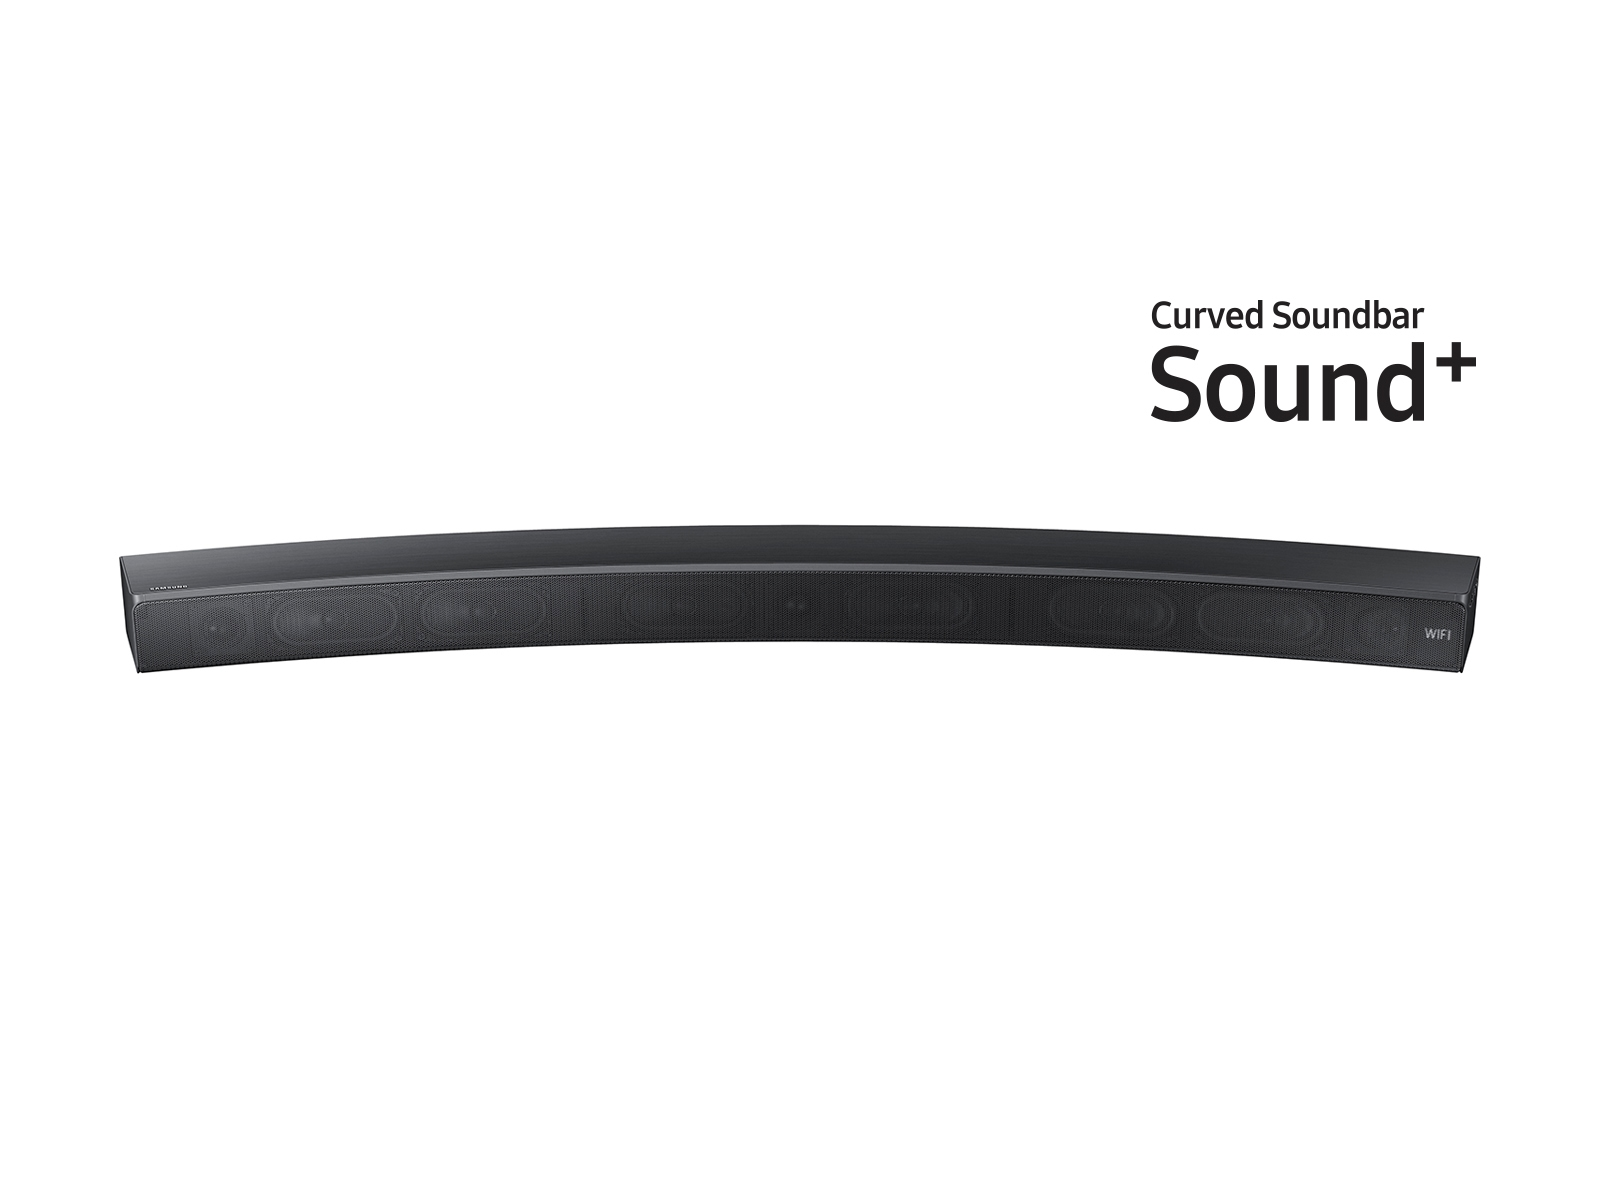 HW-MS6500 Sound+ Curved Premium Soundbar